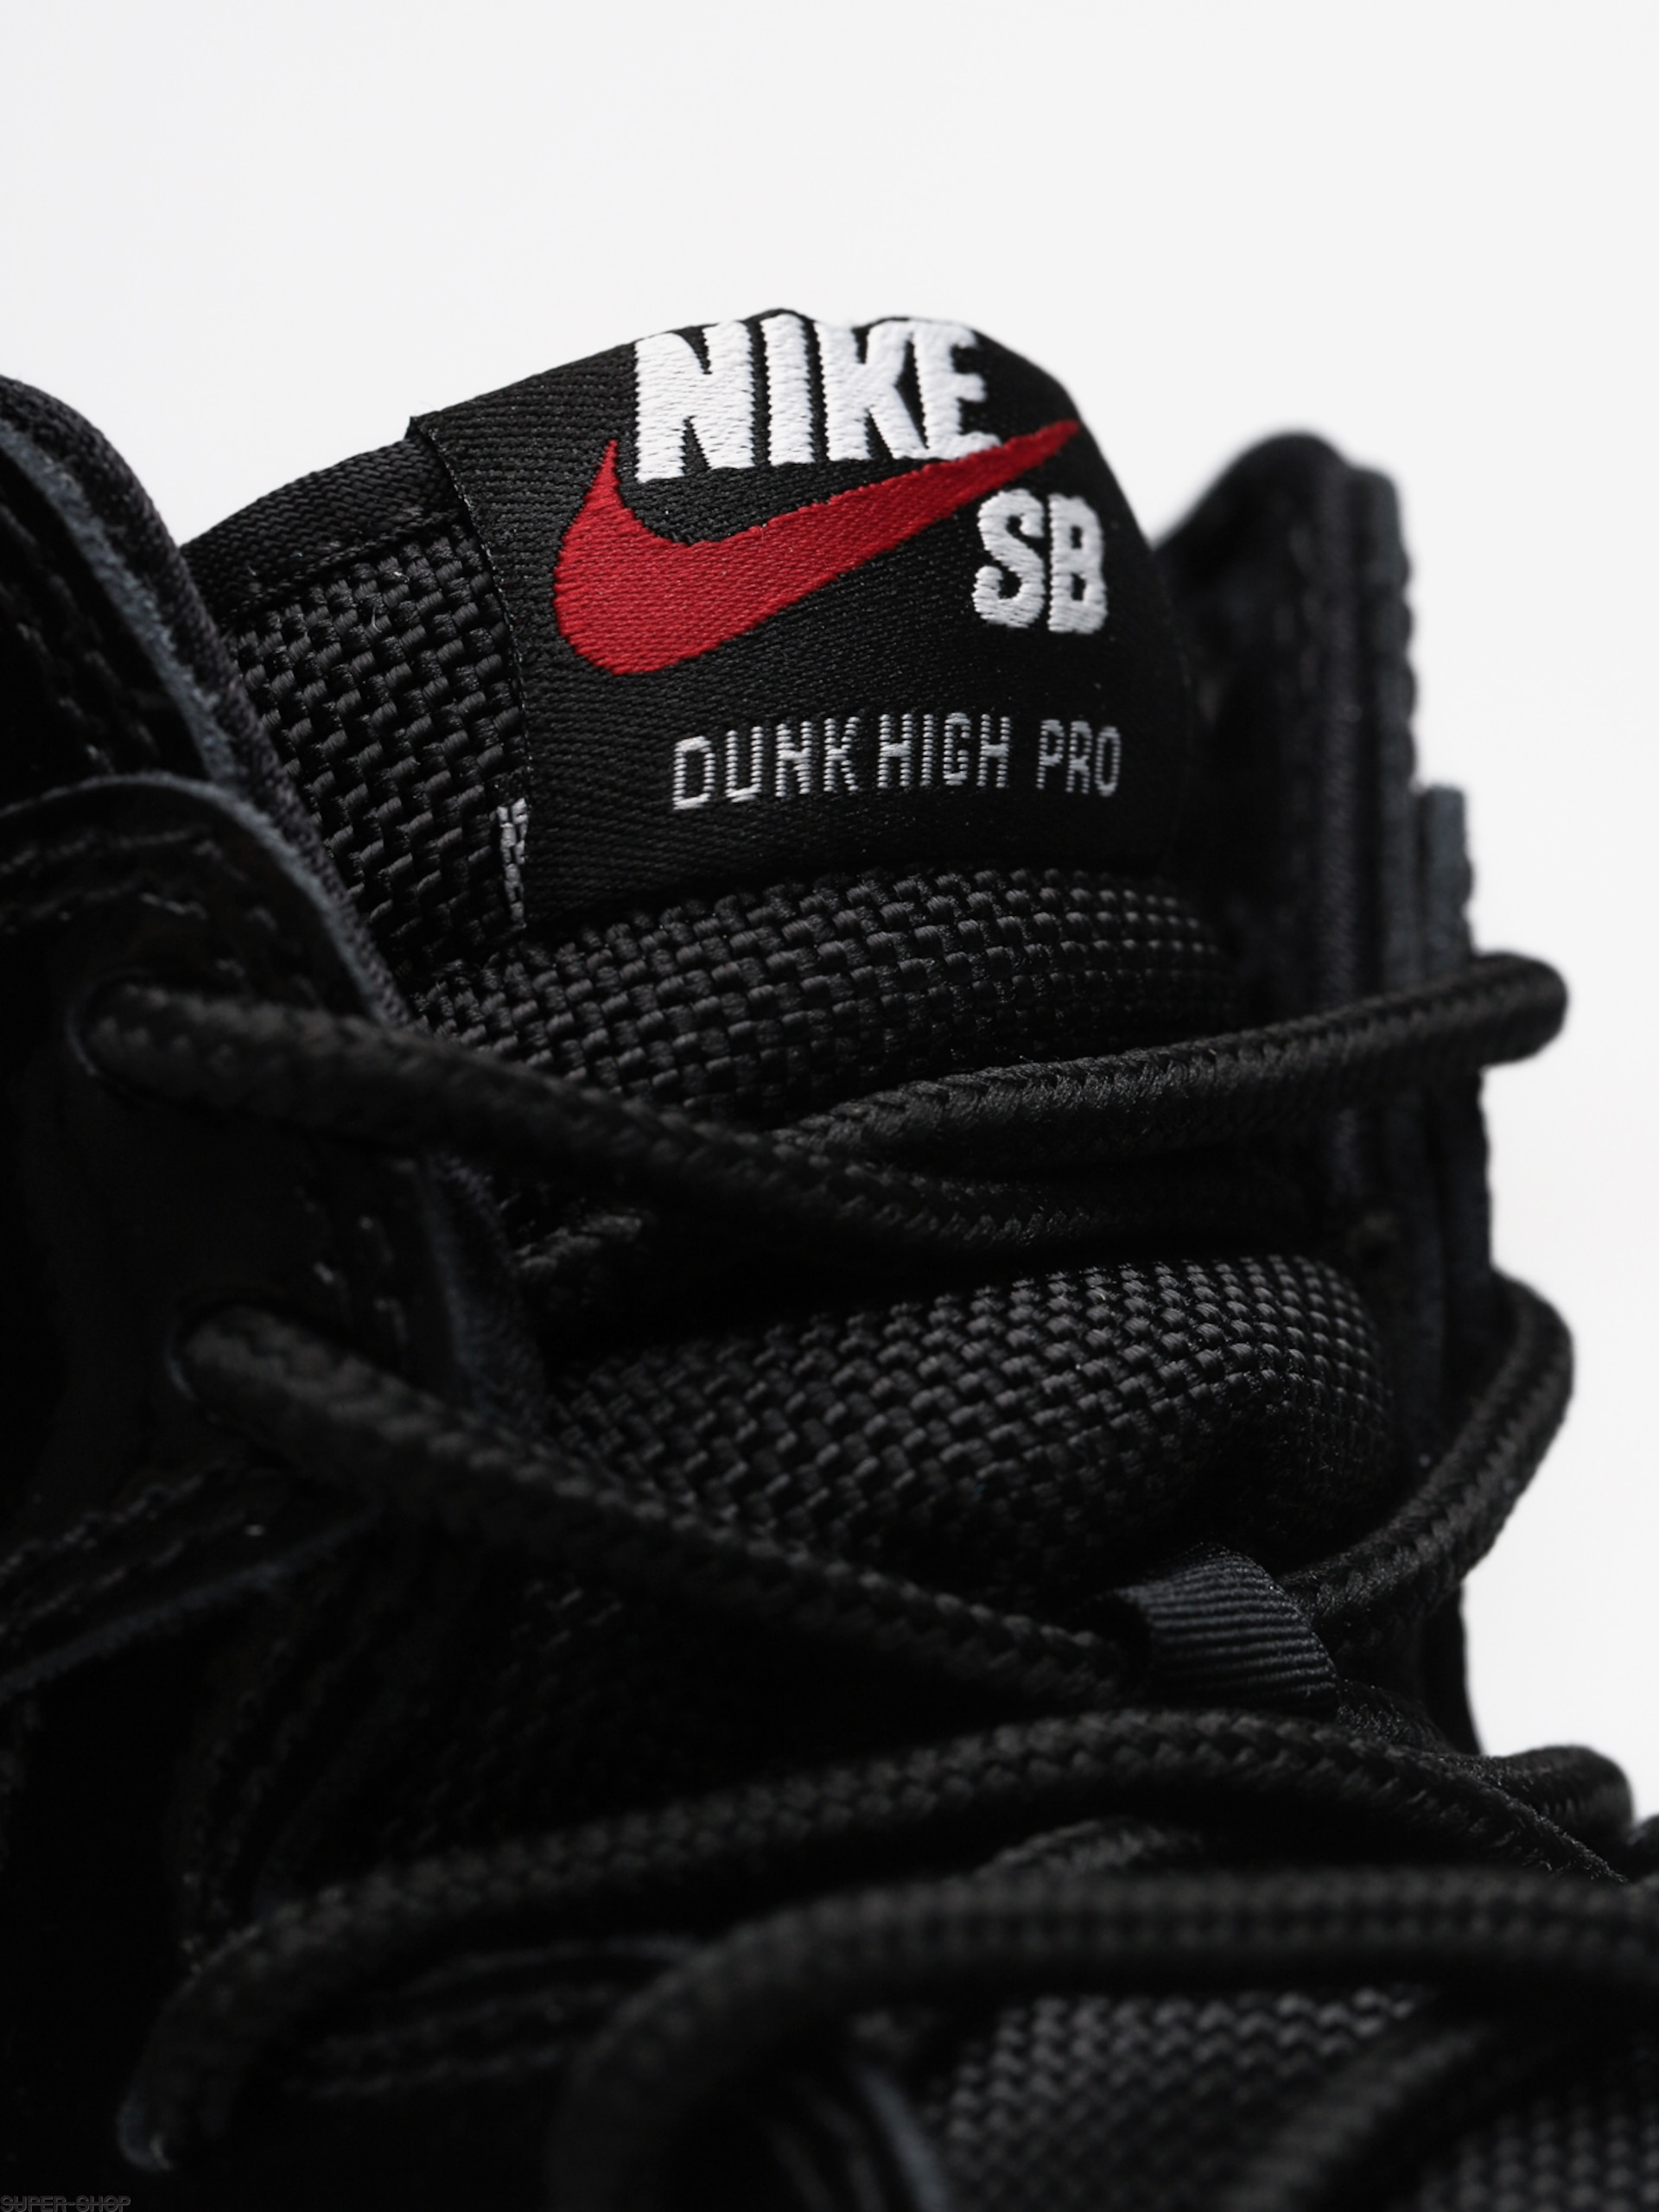 Zoom QsChaussures Tr High Nike Dunk Sb IgymYbf7v6